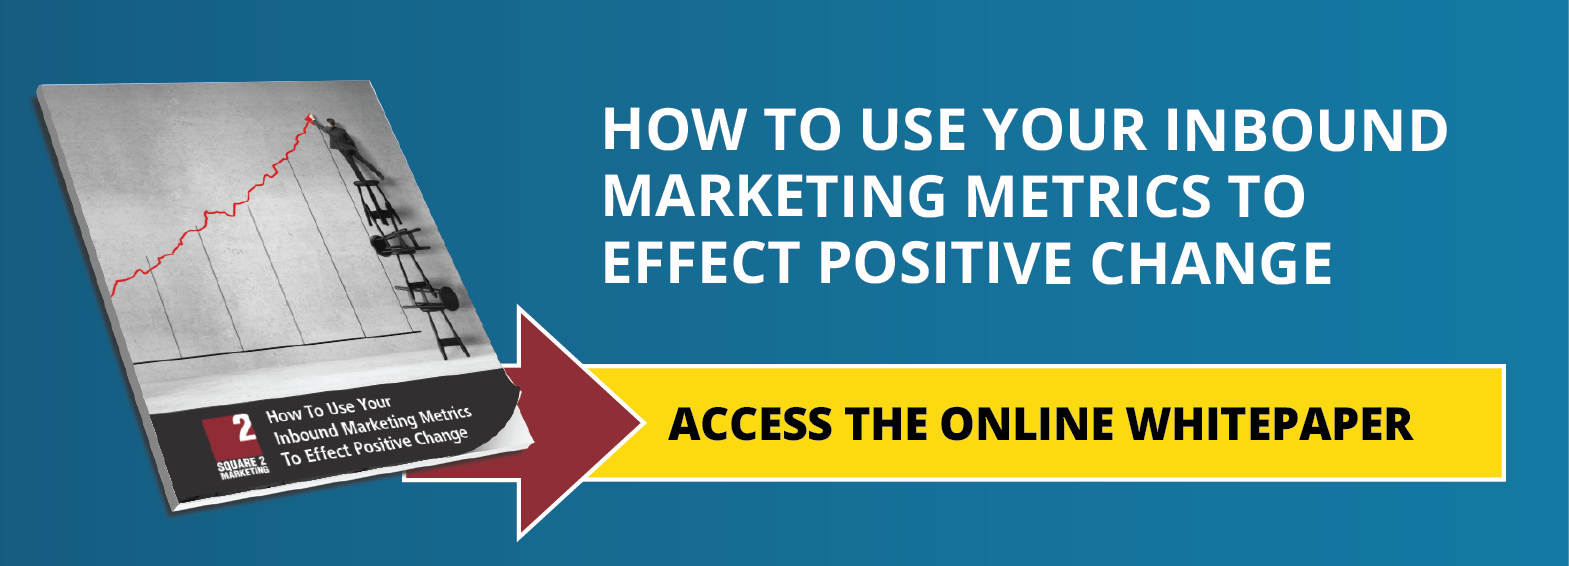 How To Use Inbound Marketing Metrics To Affect Positive Change